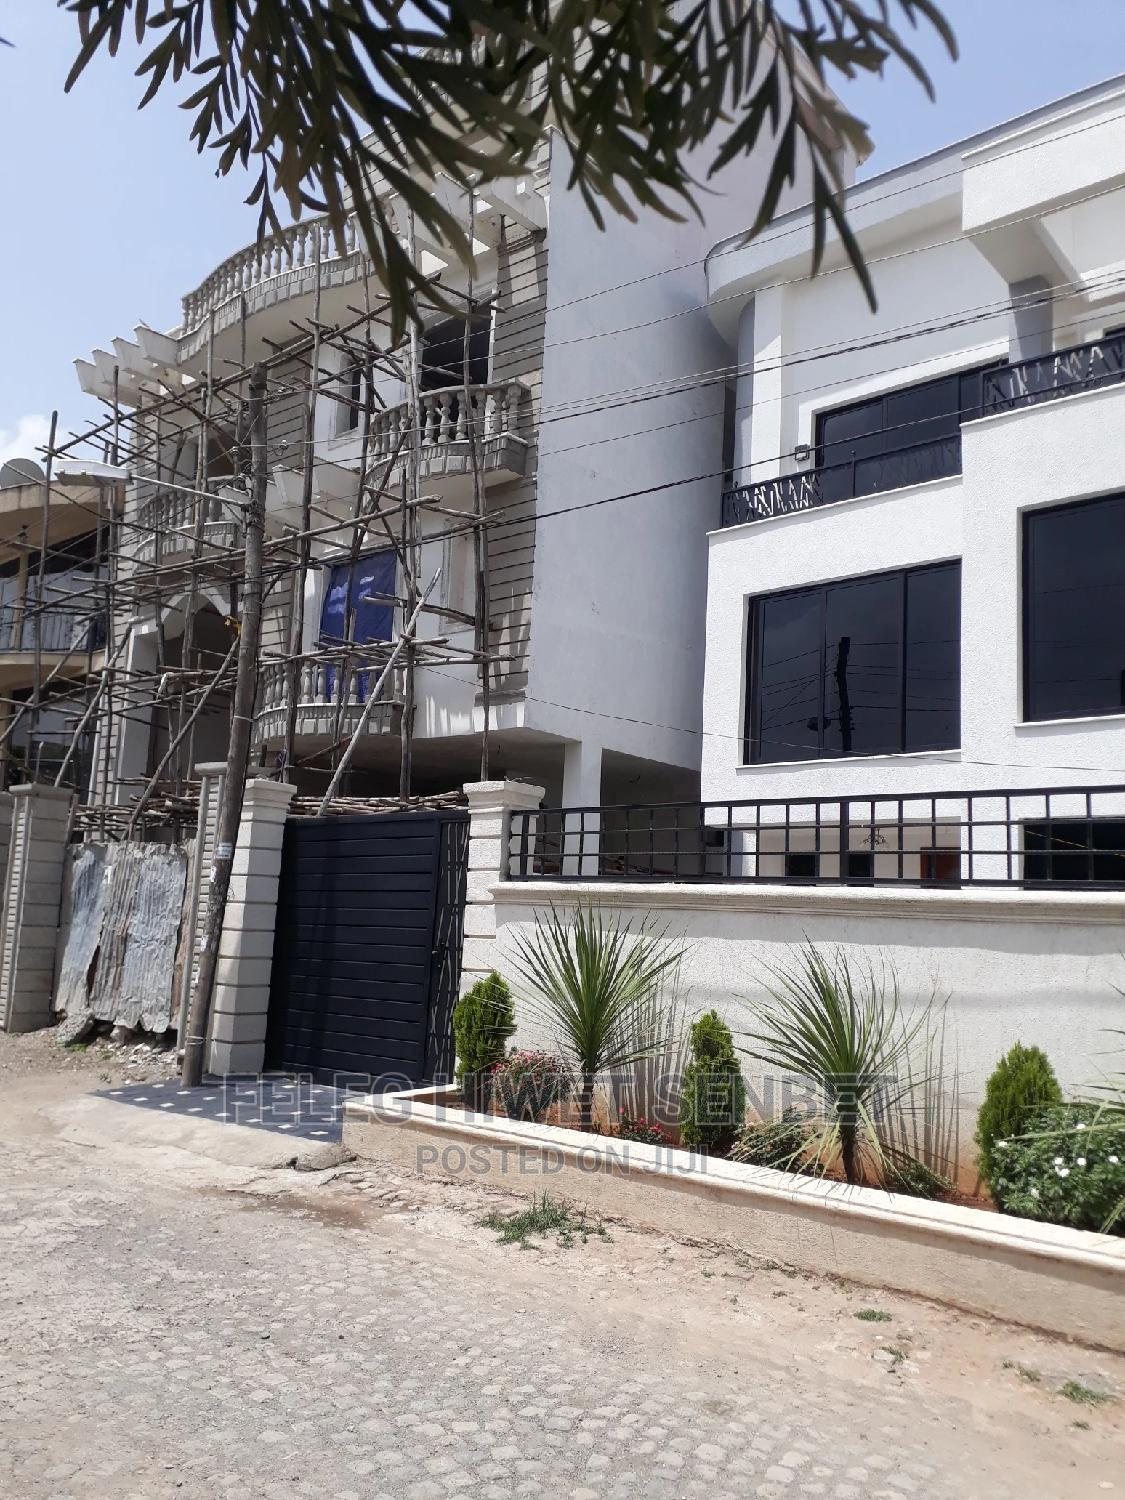 Furnished 6bdrm House in A.A, Bole for sale   Houses & Apartments For Sale for sale in Bole, Addis Ababa, Ethiopia